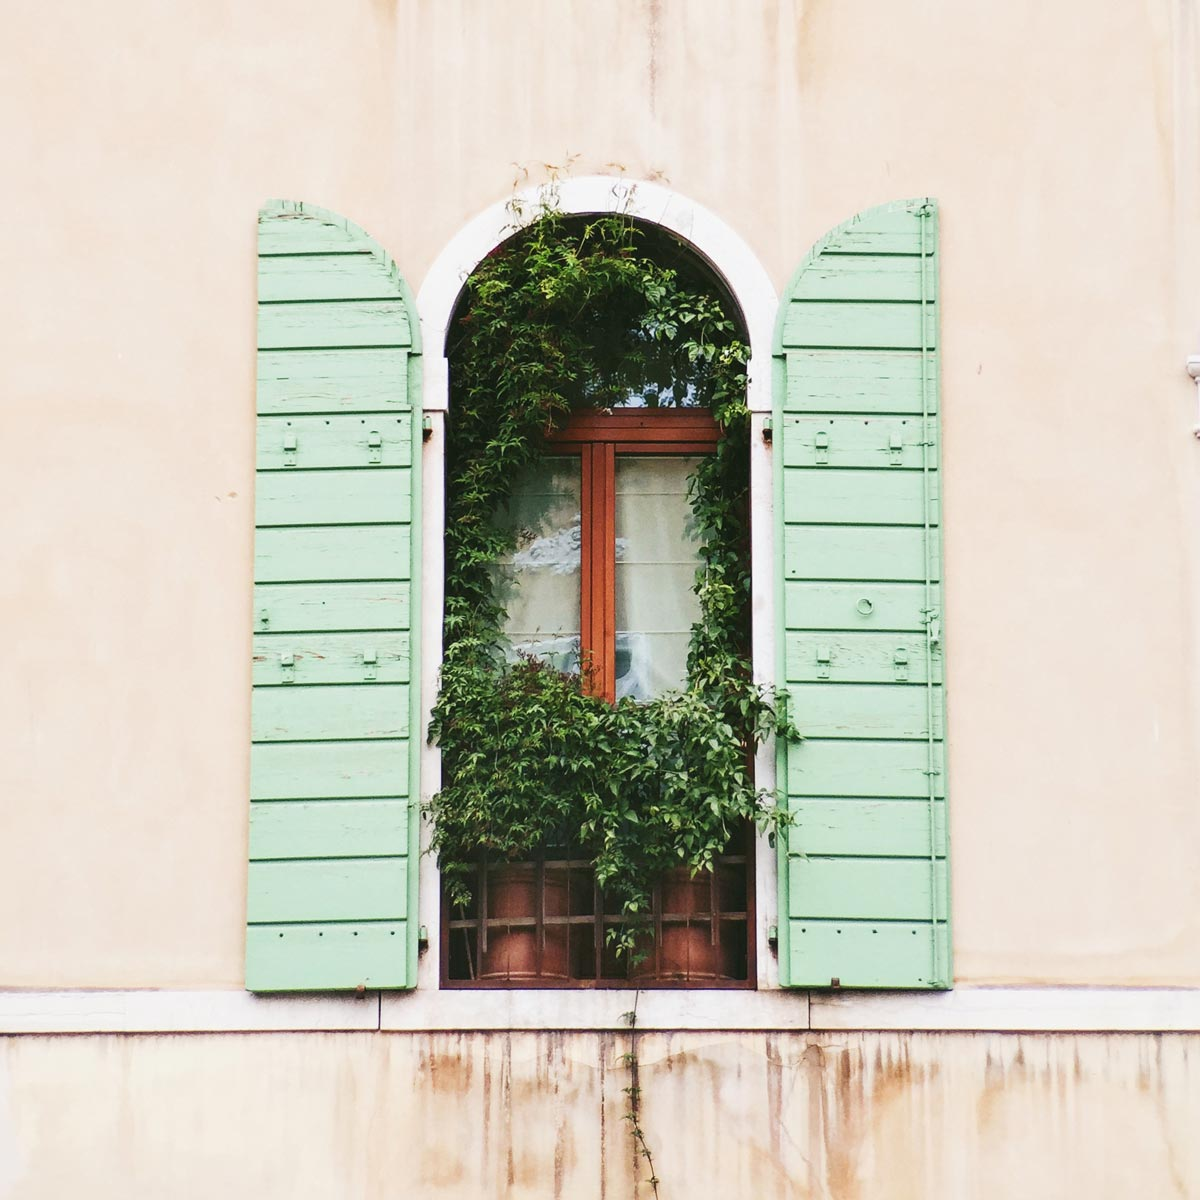 Photo by Julia Machik of ivy growing in a beautiful Italian window